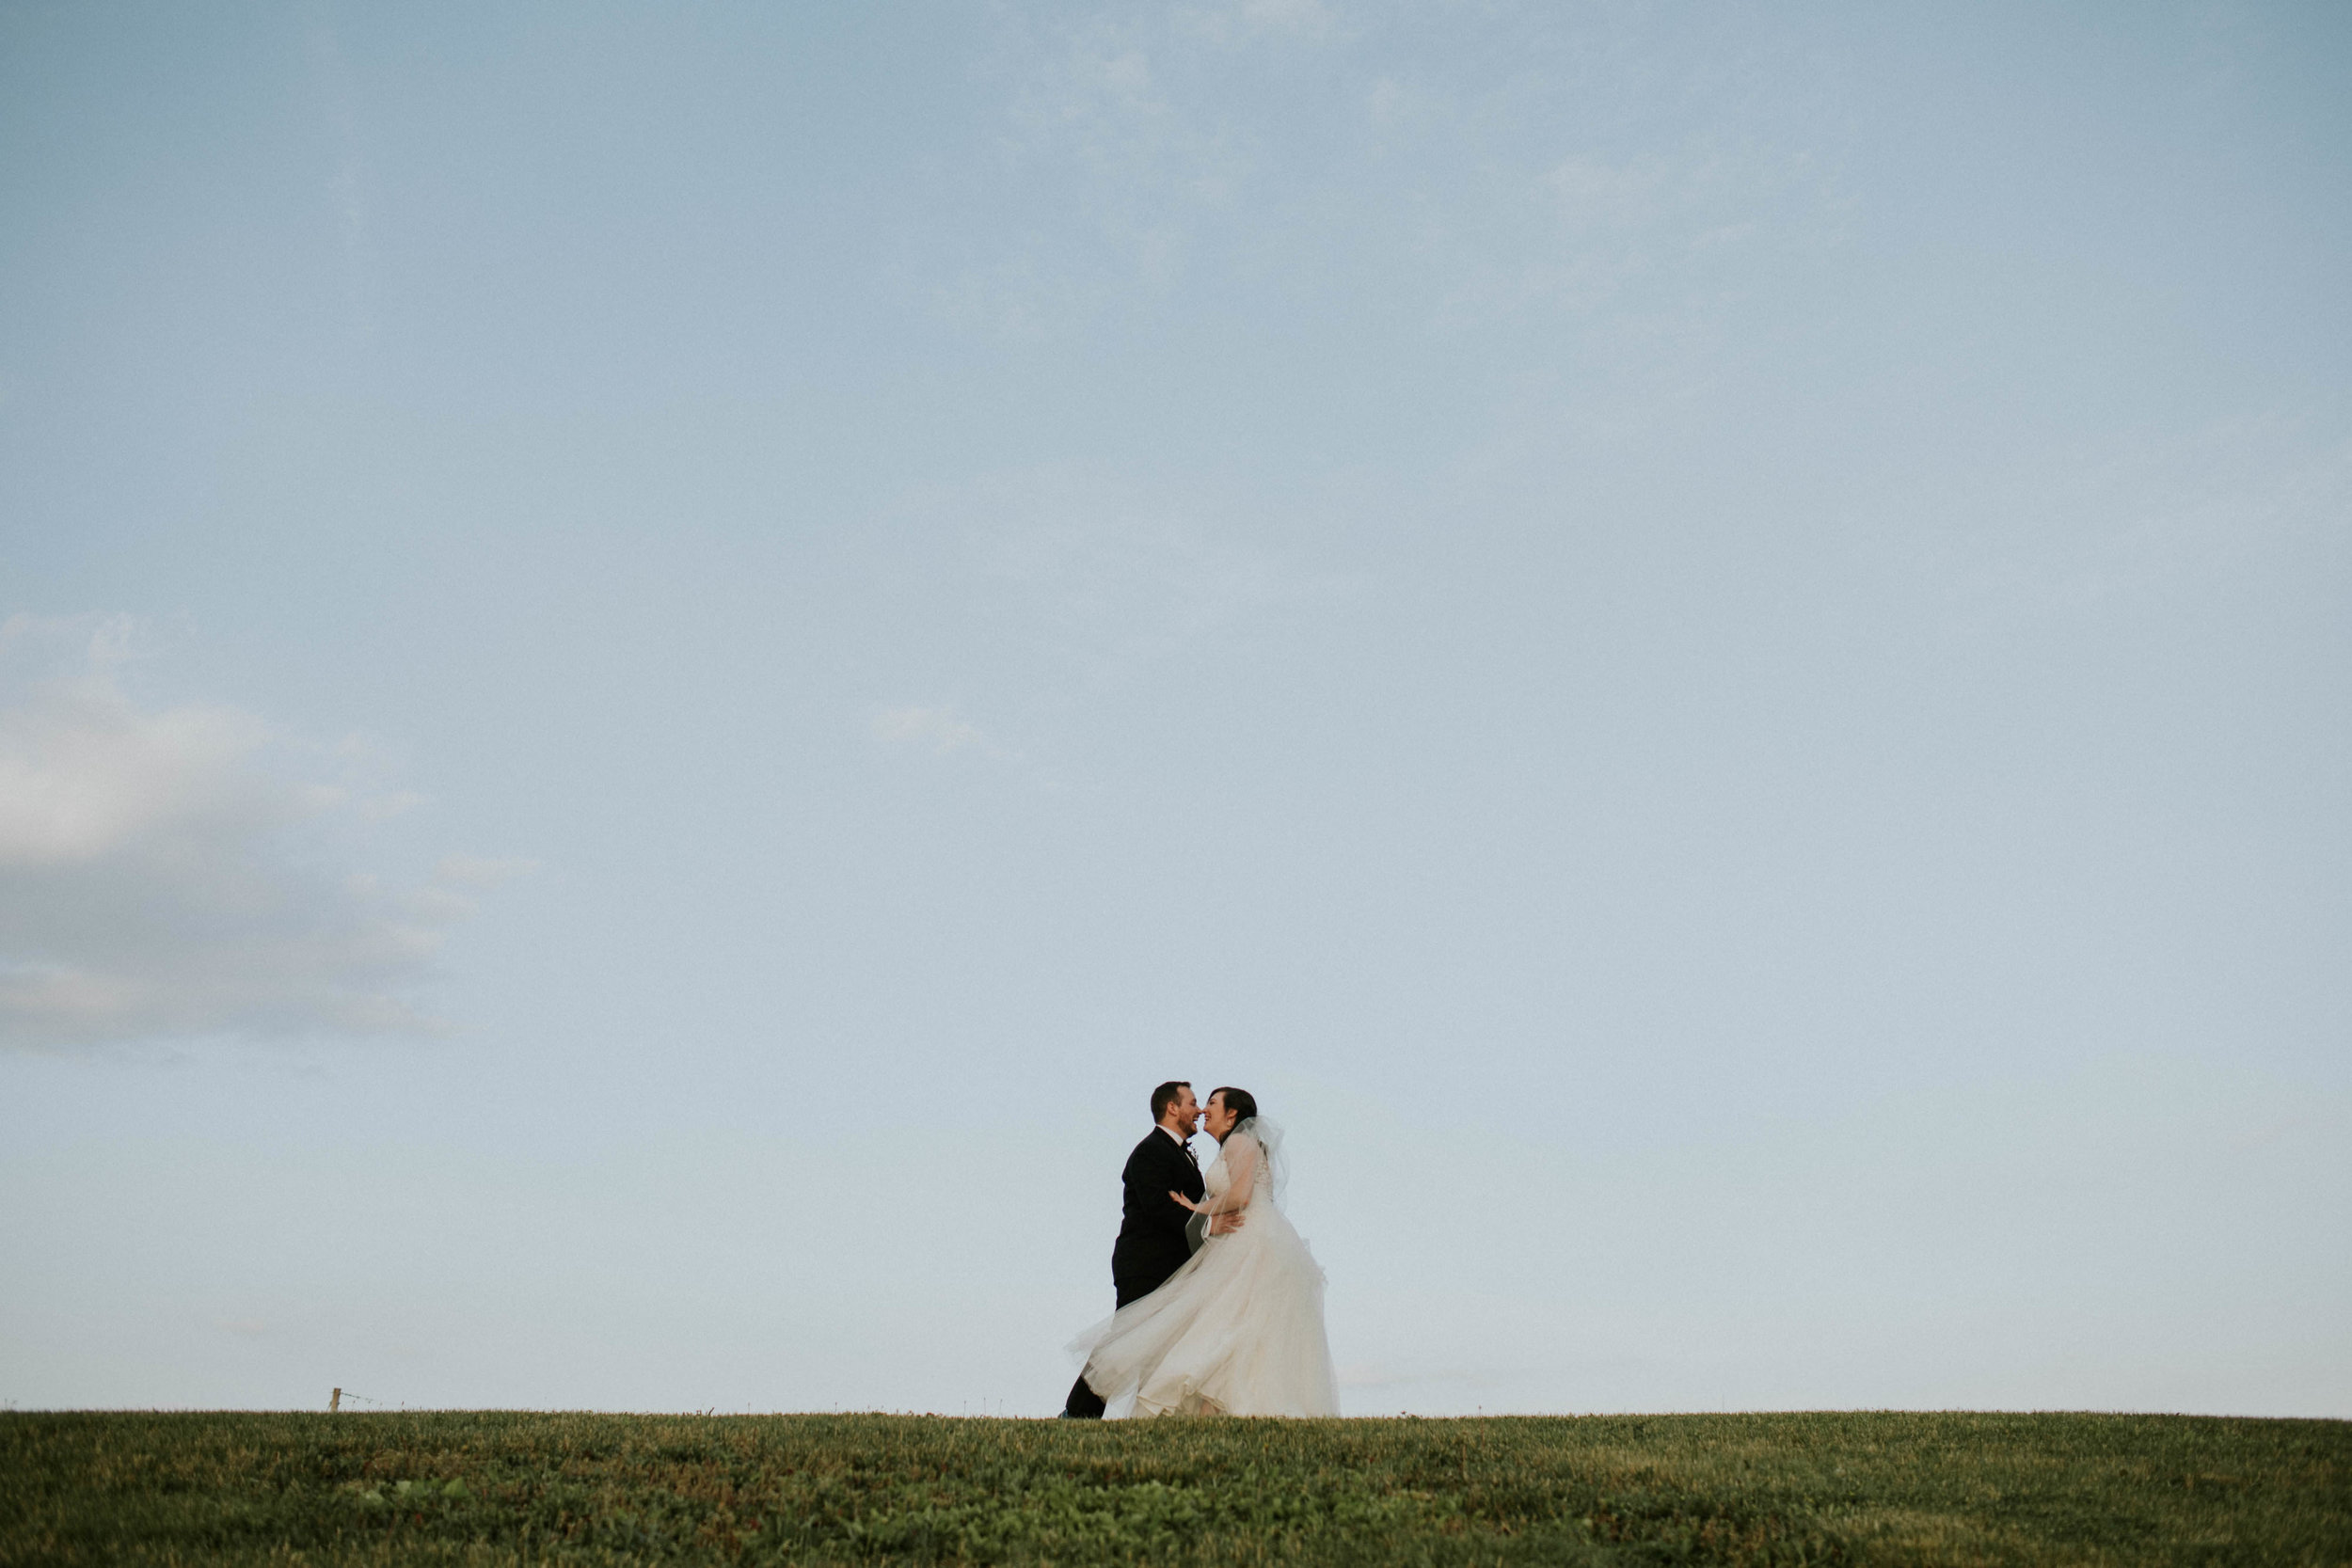 columbus ohio wedding photographer grace e jones photography103.jpg